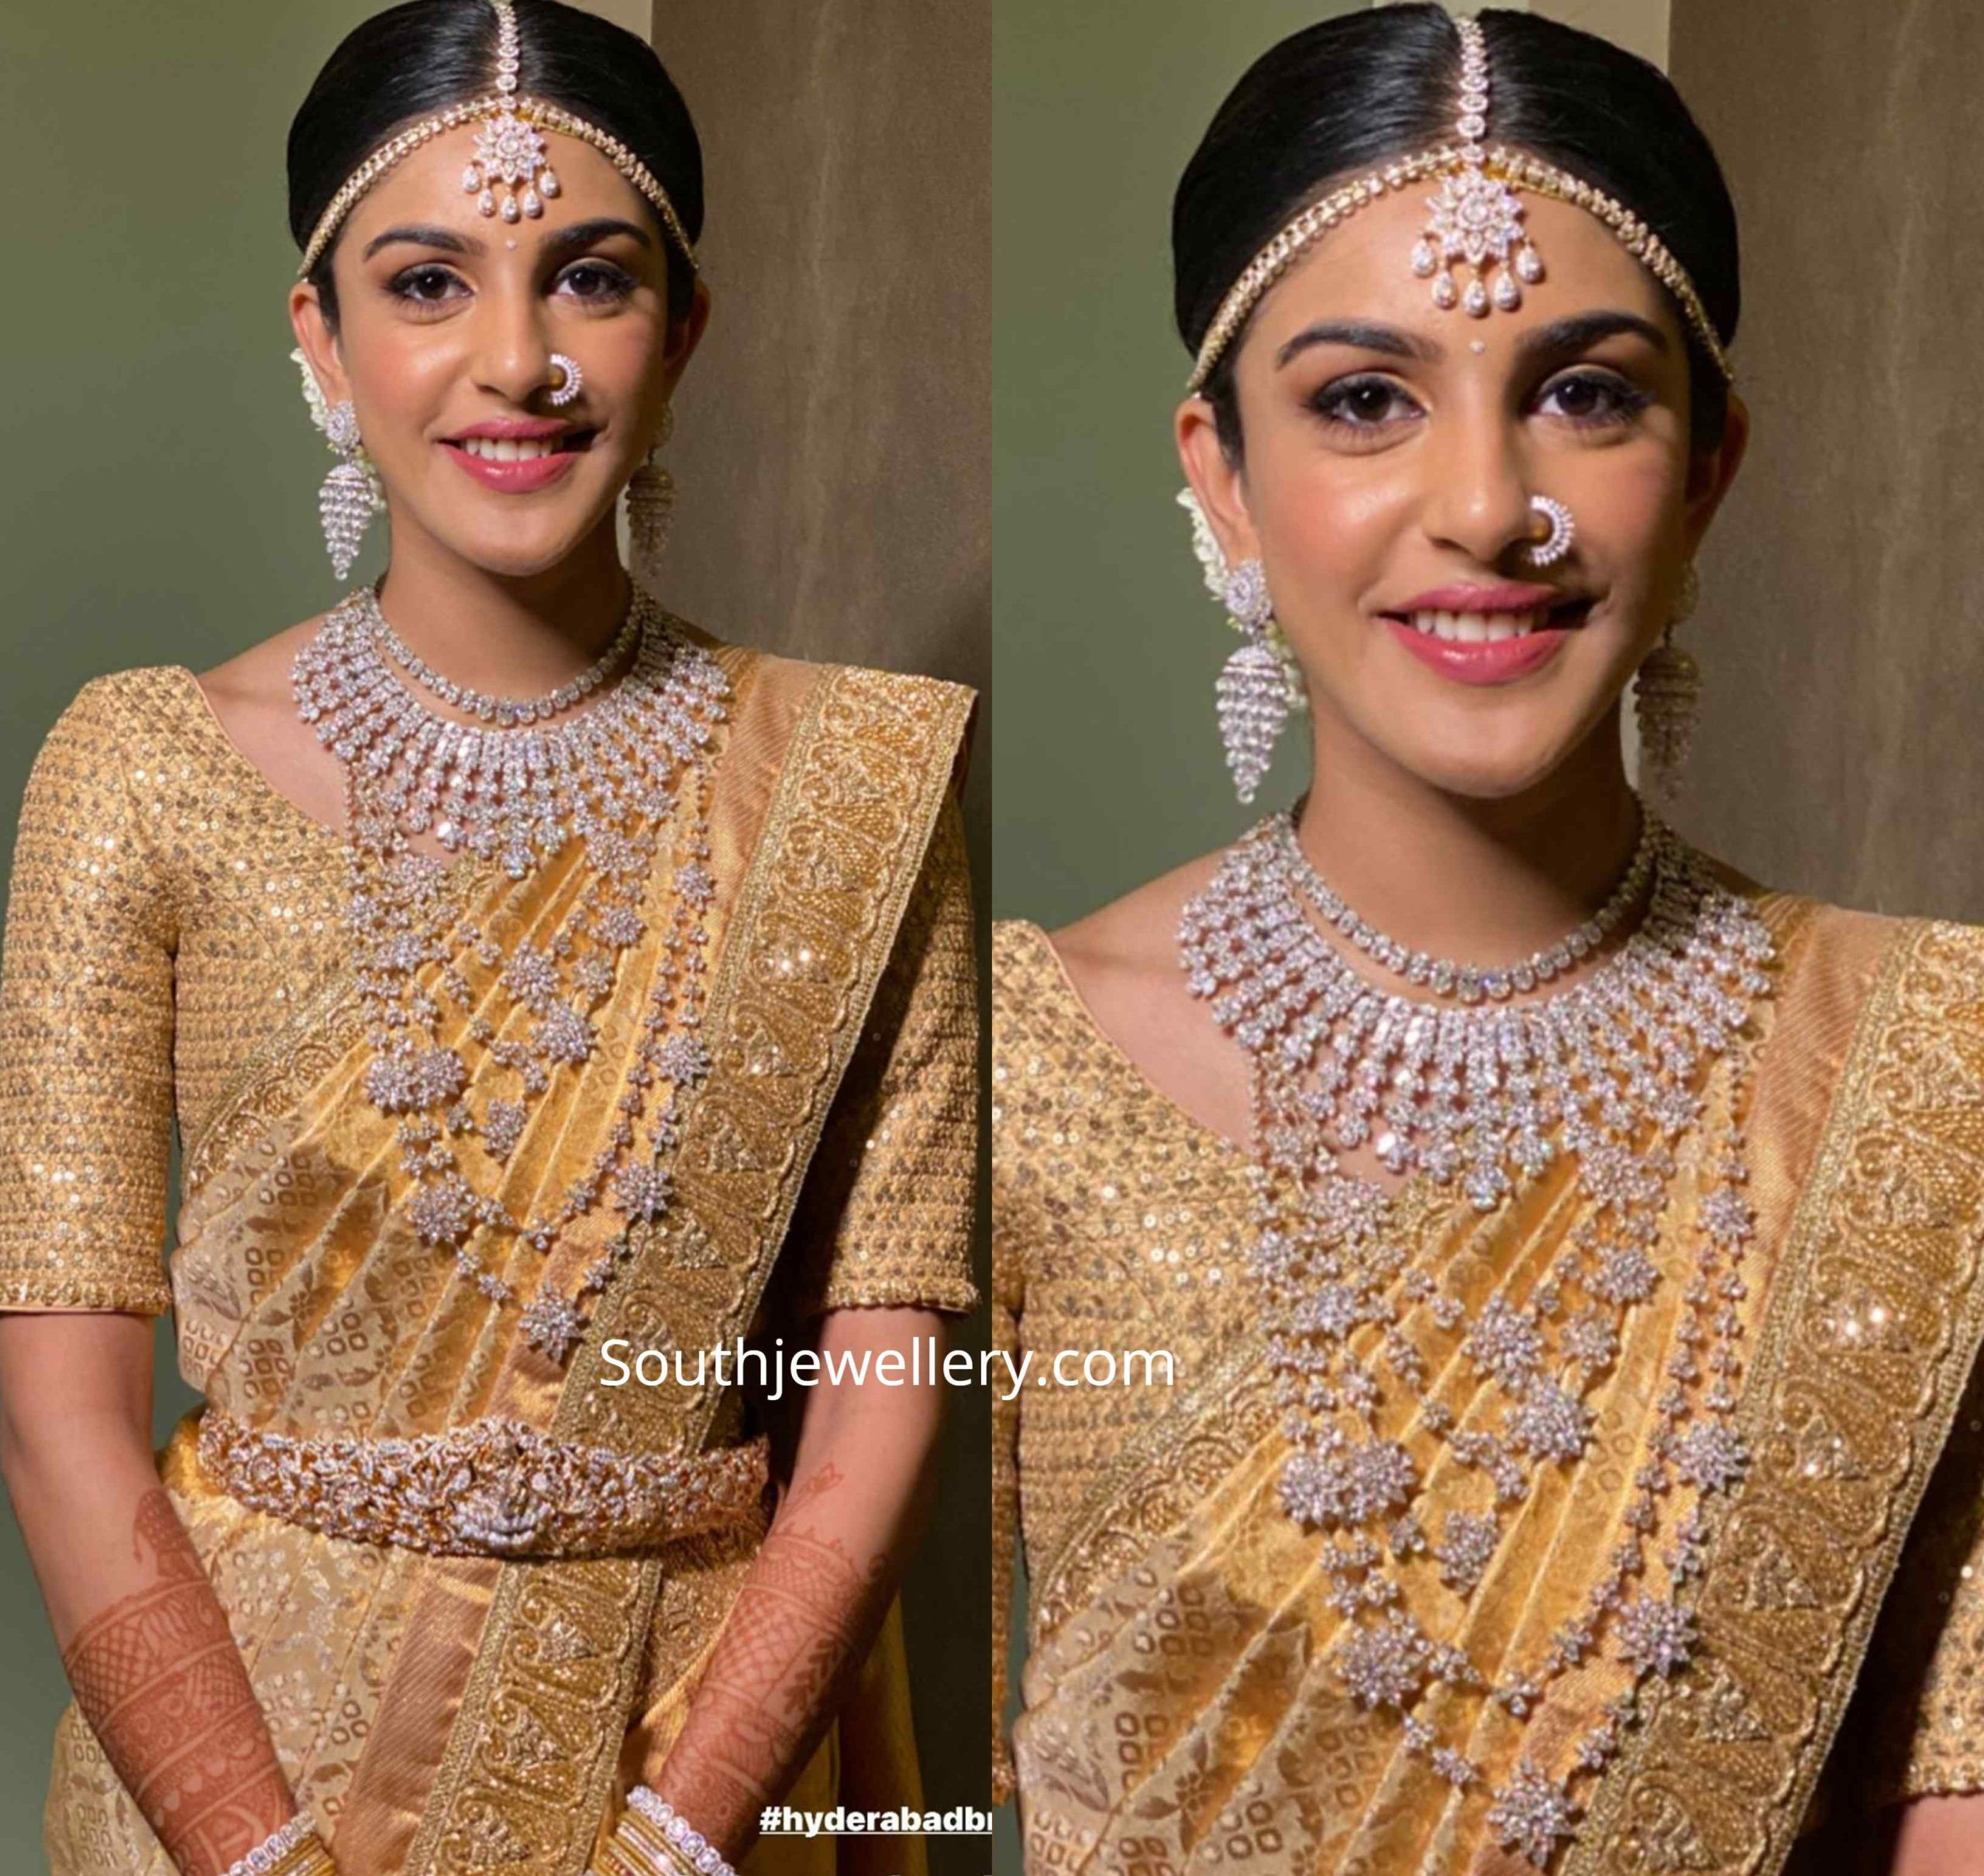 Photo of South Indian Bride in elegant wedding jewellery.  She adorned a diamond necklac…